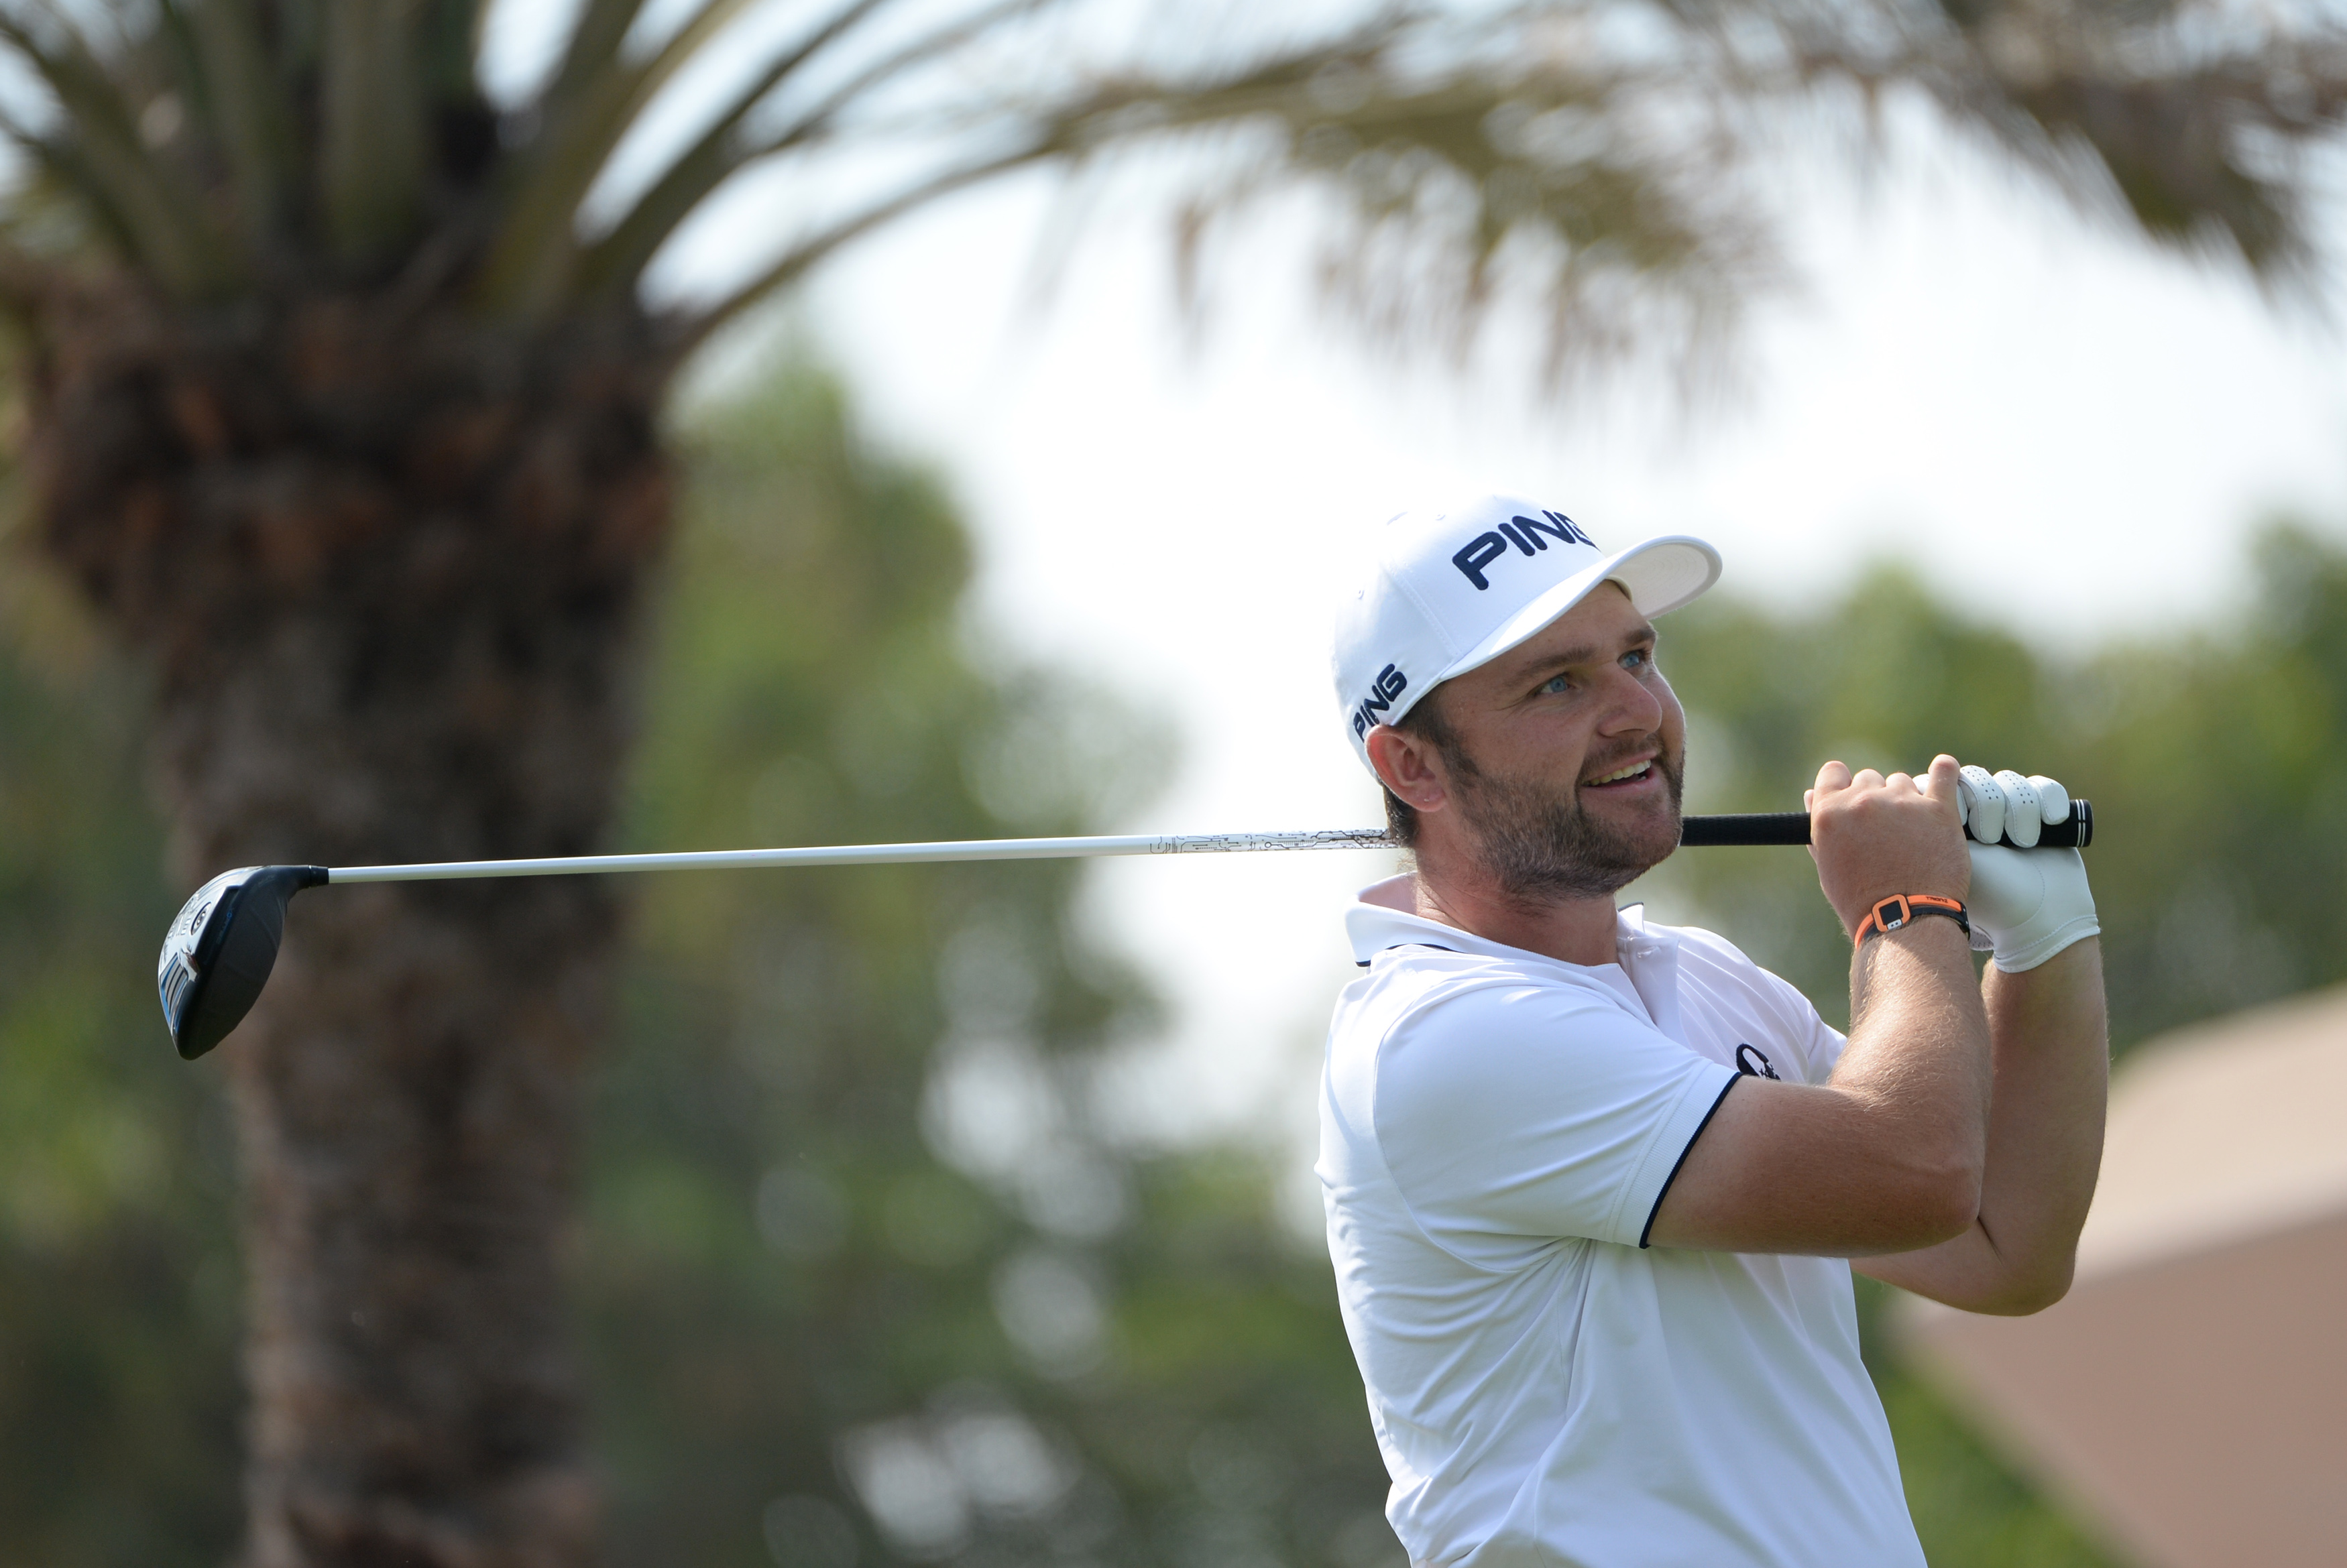 Andy Sullivan tees off on the 18th hole during the second round of the Abu Dhabi HSBC Golf Championship.